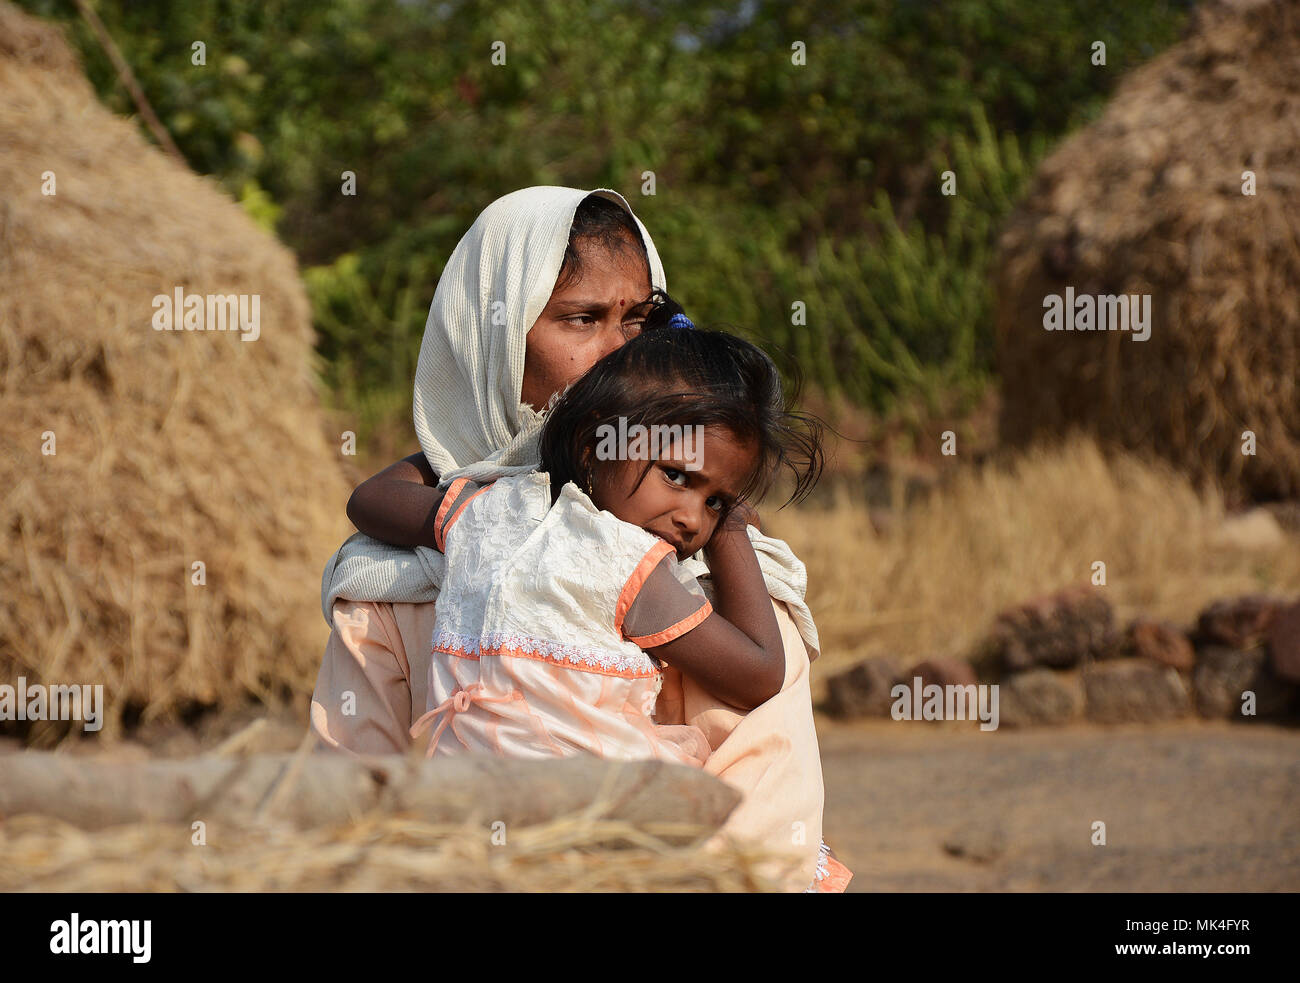 A mother lovingly holding her child giving her a cuddle, Rural area, India. - Stock Image